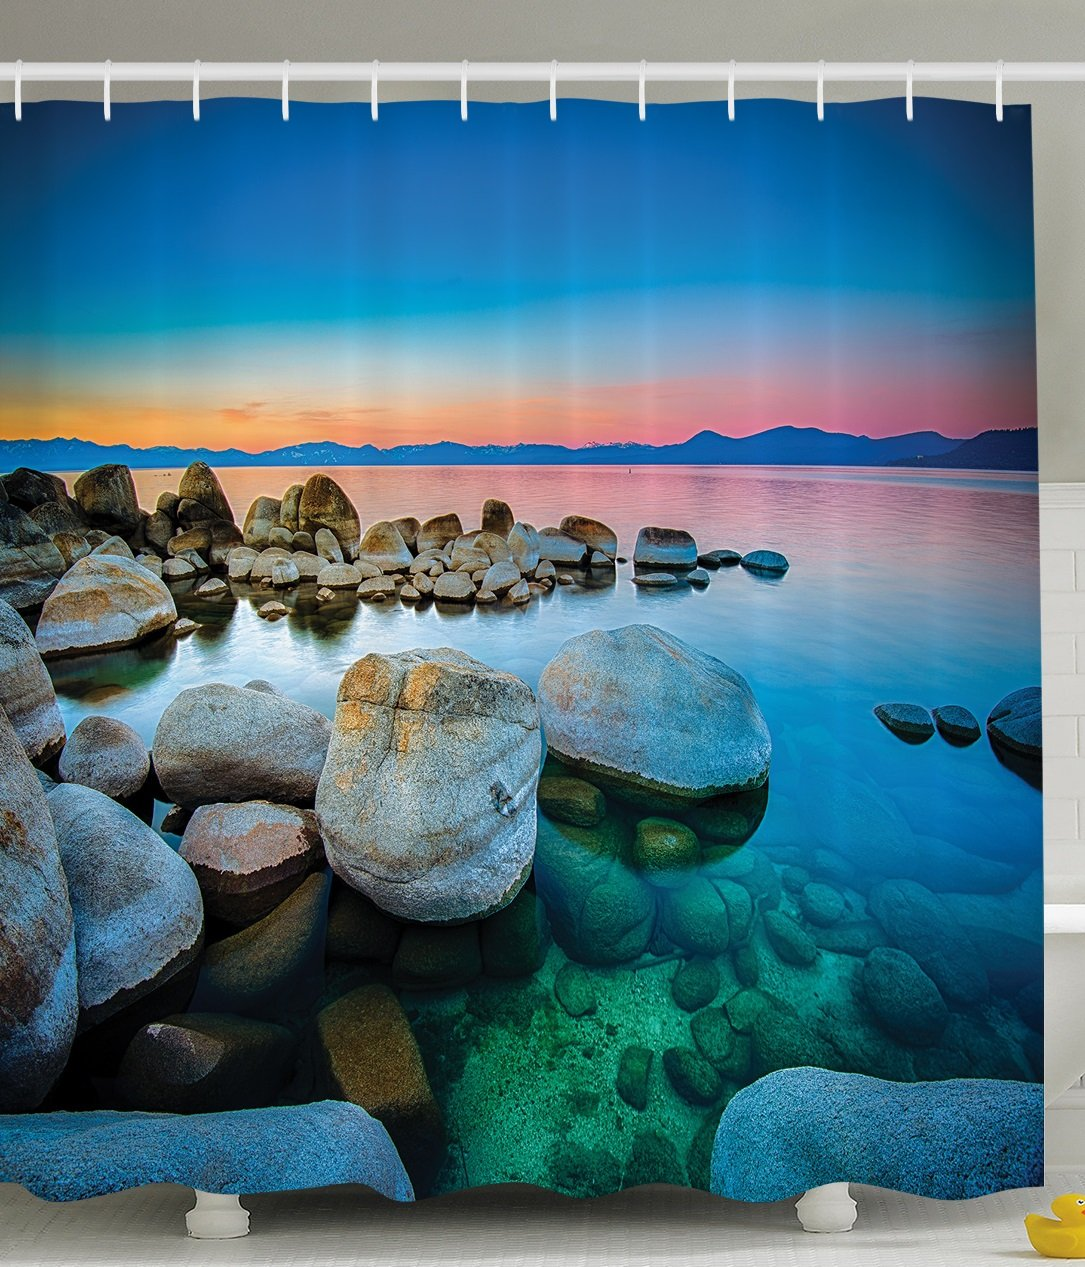 Ambesonne Lake Tahoe California America Decor Collection, Vibrant Seascape Beach Stones Sunset View Water Reflection, Polyester Fabric Bathroom Shower Curtain Set with Hooks, Blue Orange Green